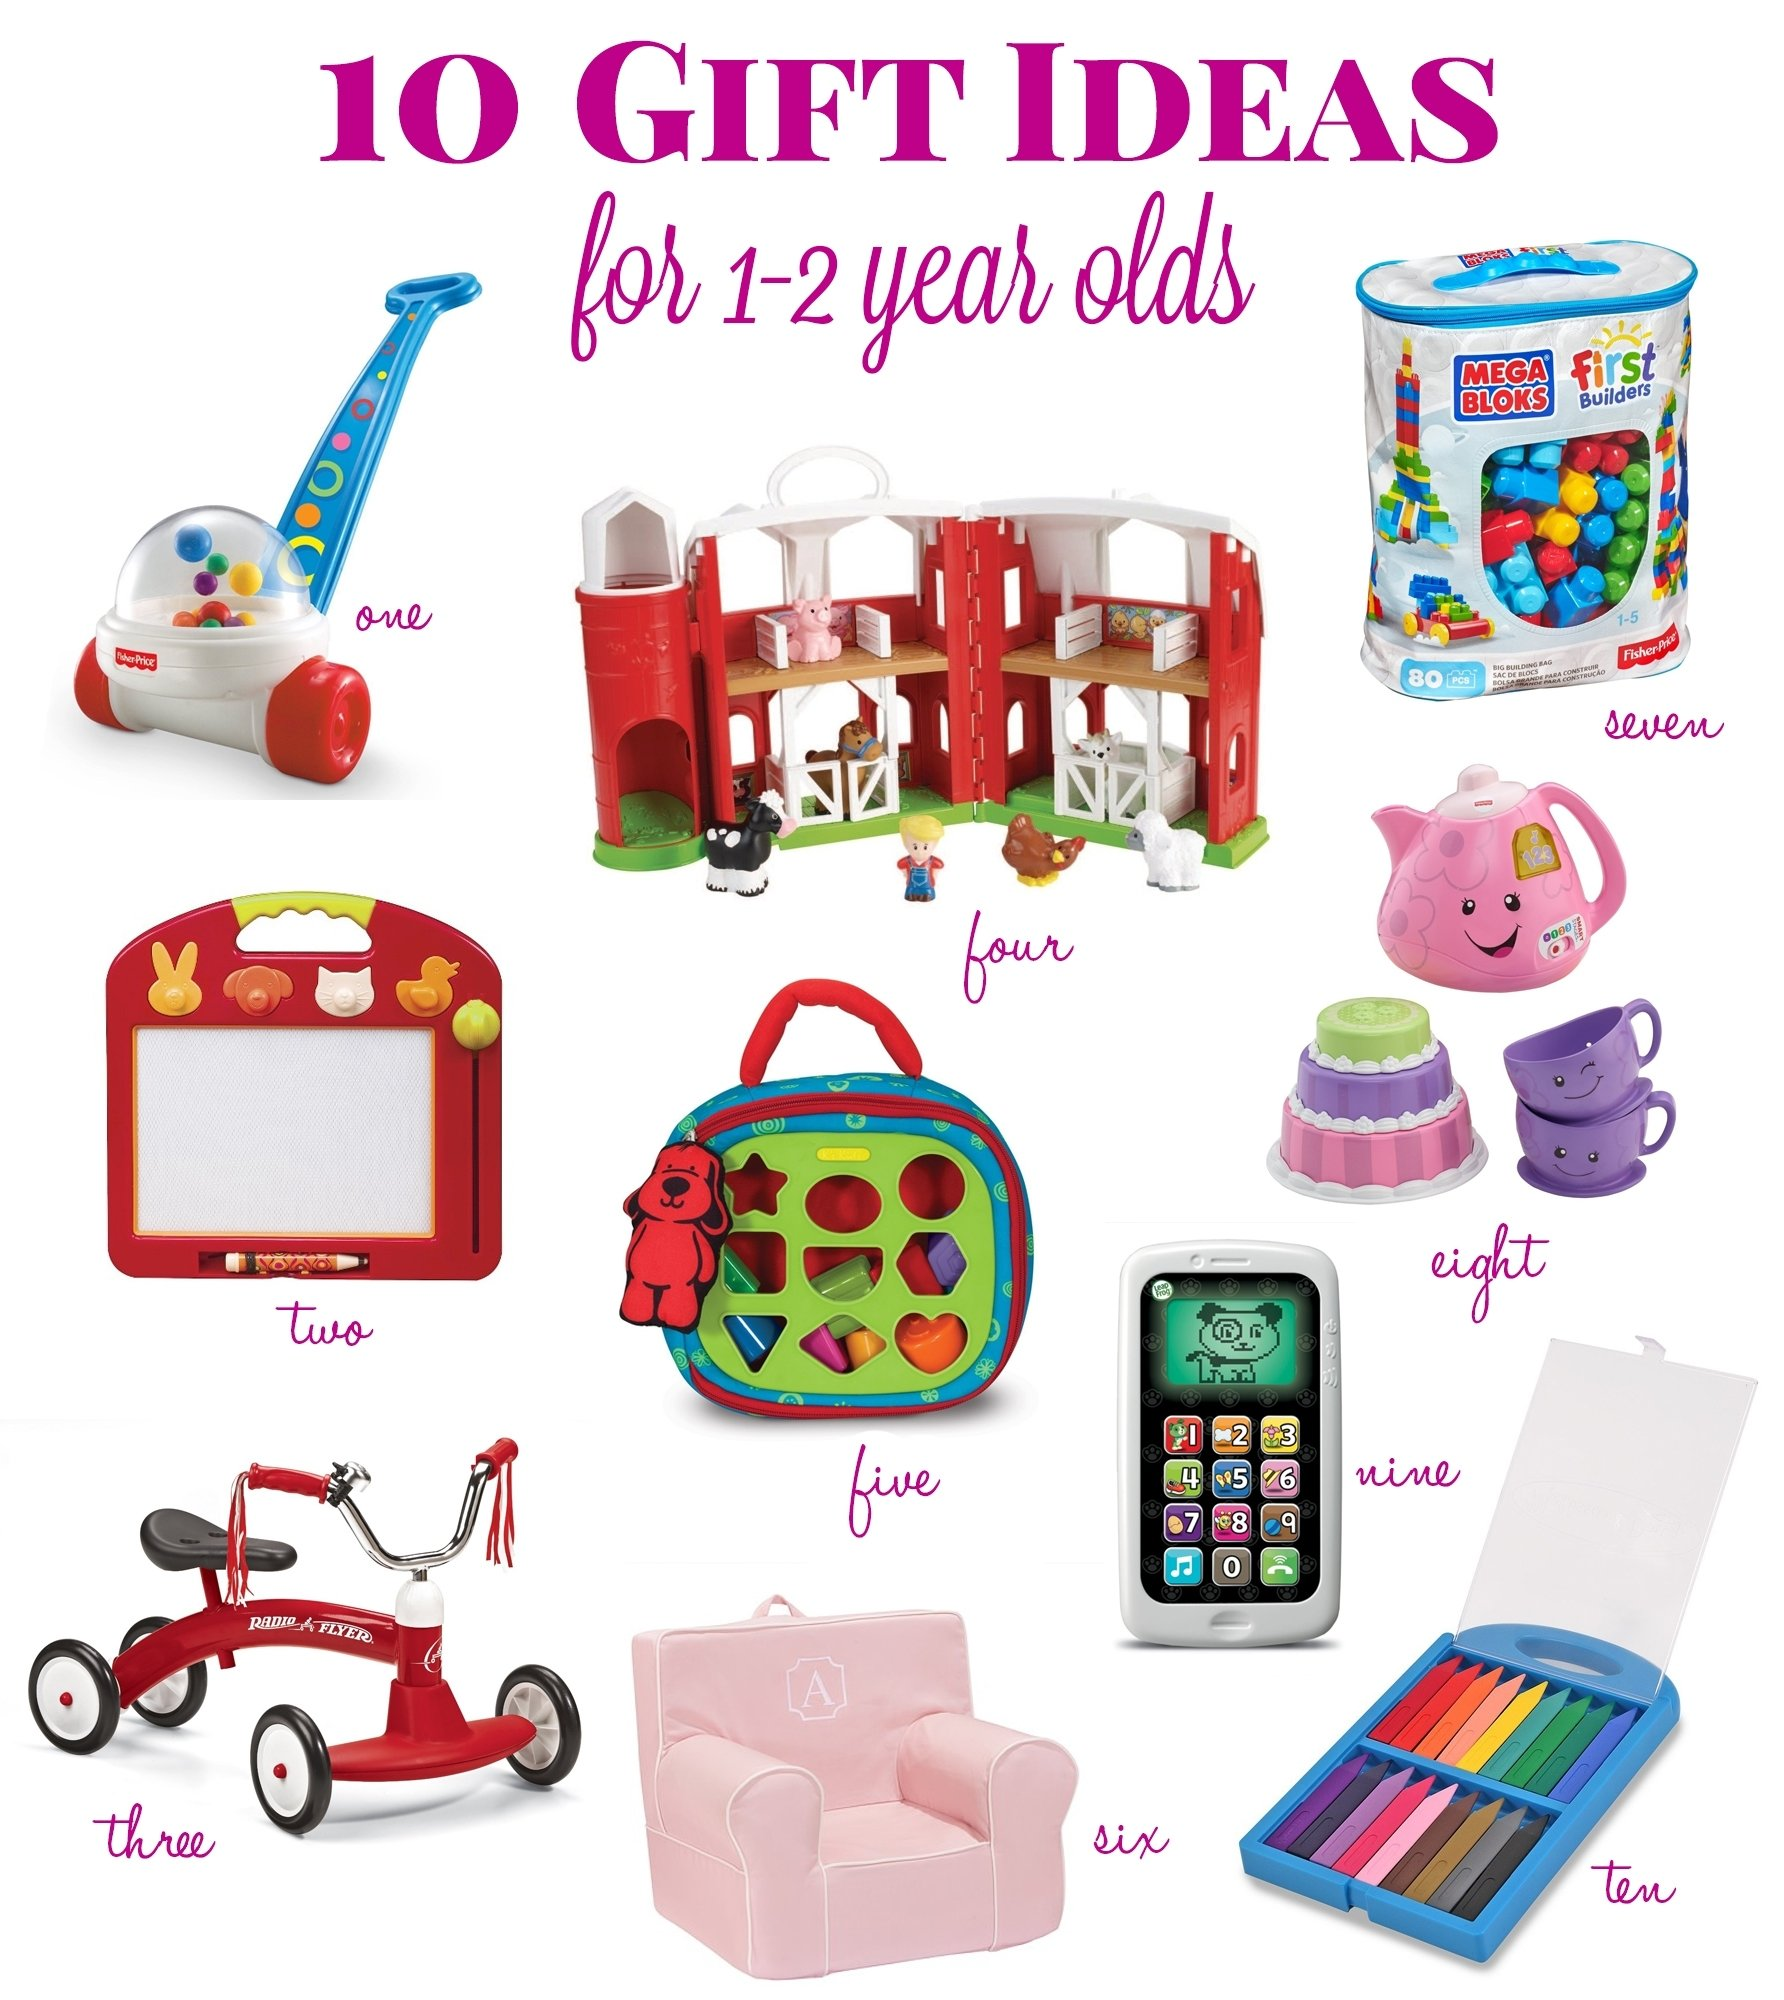 10 Perfect 1 Year Old Gift Ideas gift ideas for a 1 year old lifes tidbits 1 2020